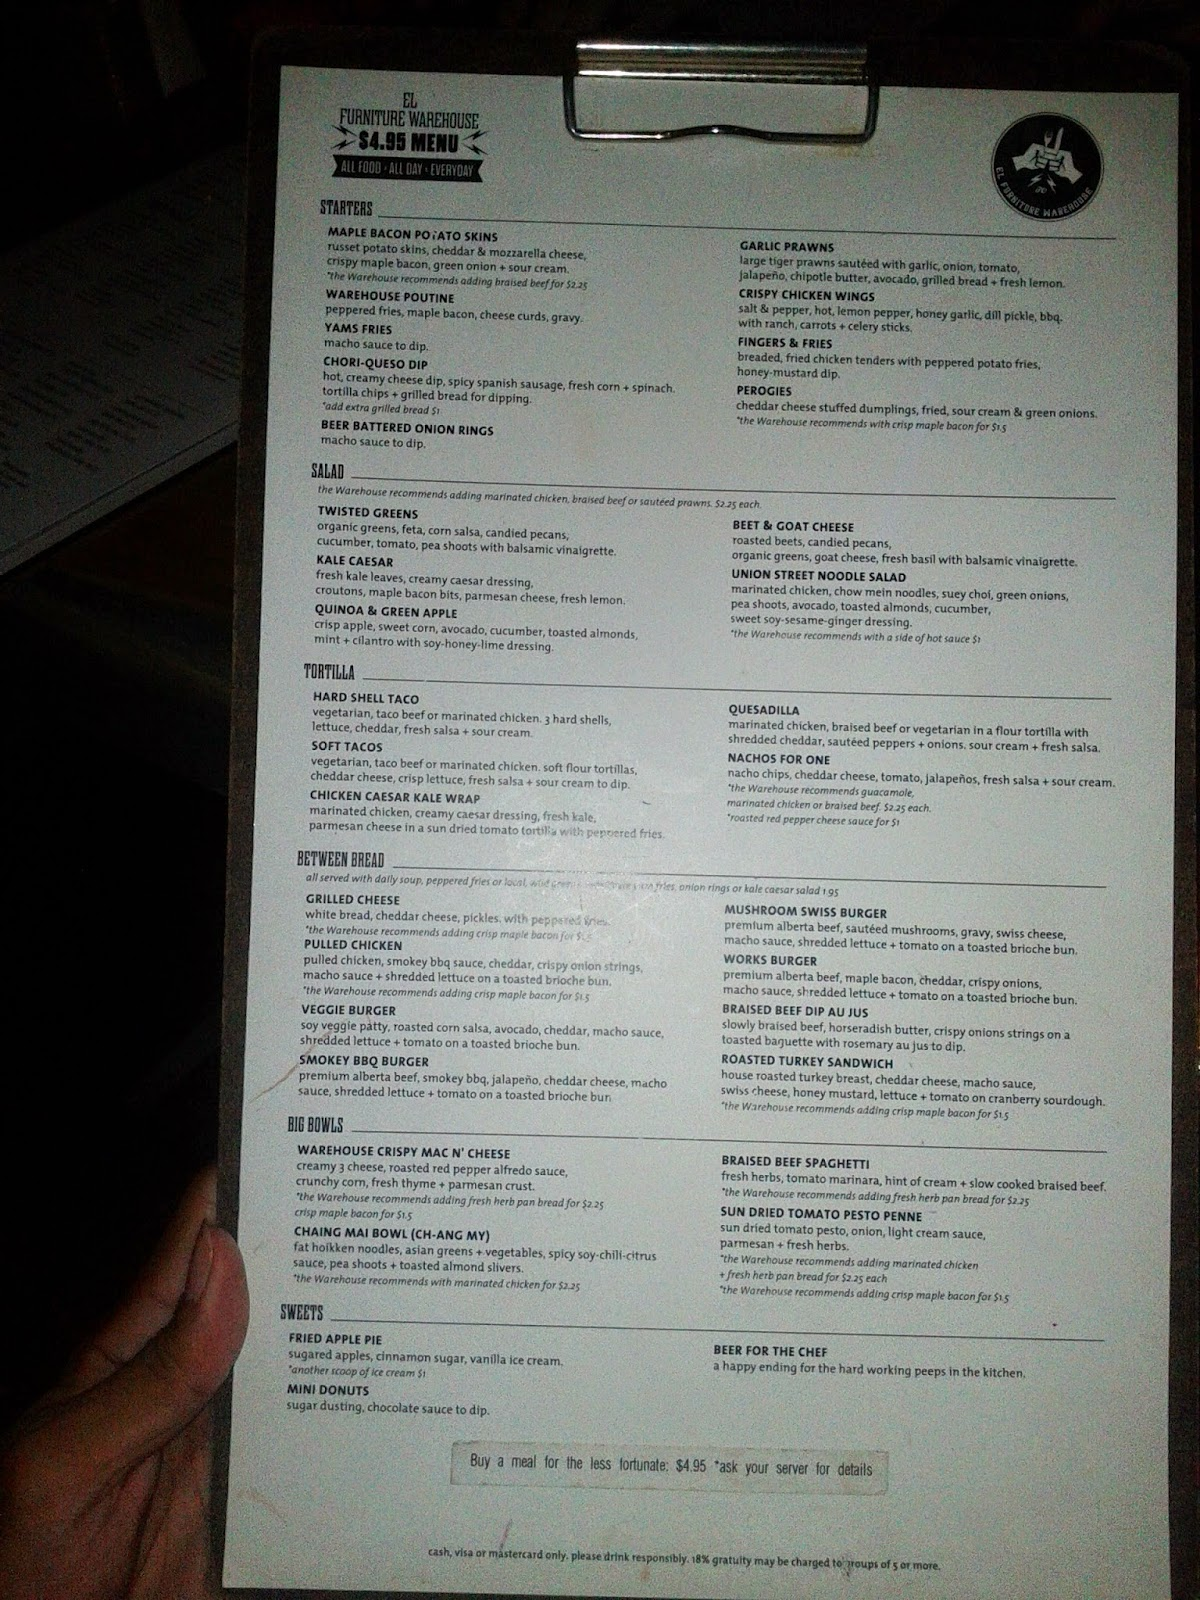 travel toronto now el furniture warehouse menu best On el furniture warehouse toronto menu